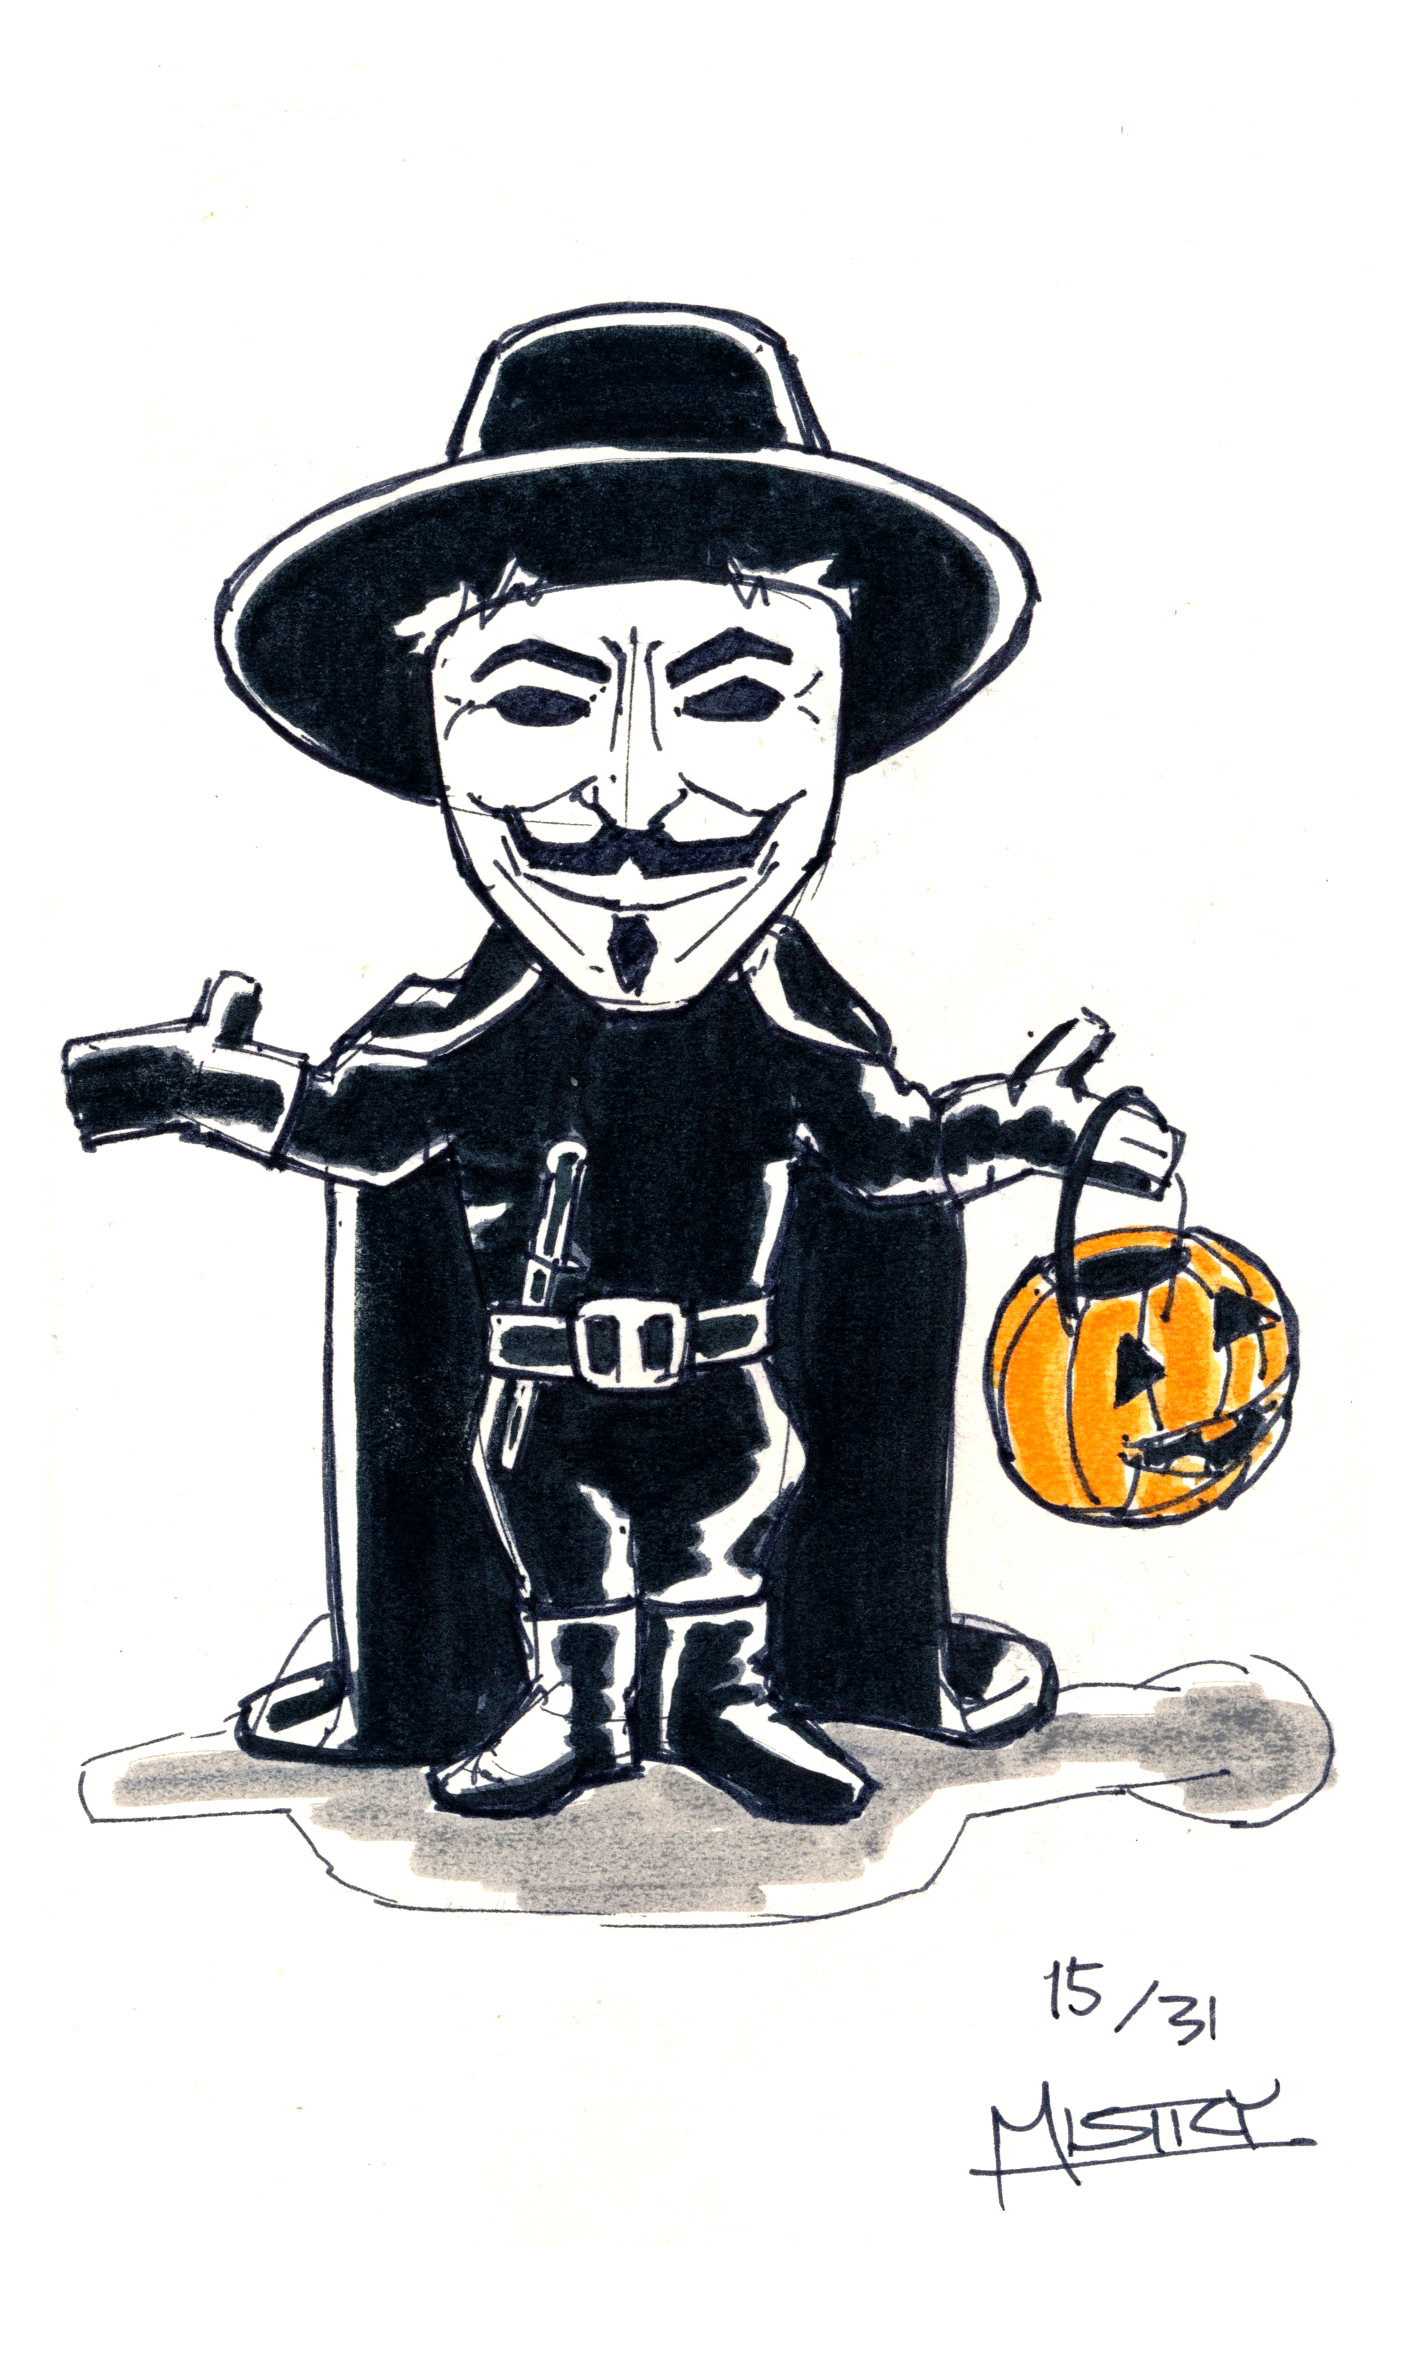 guy fawkes edit.jpg